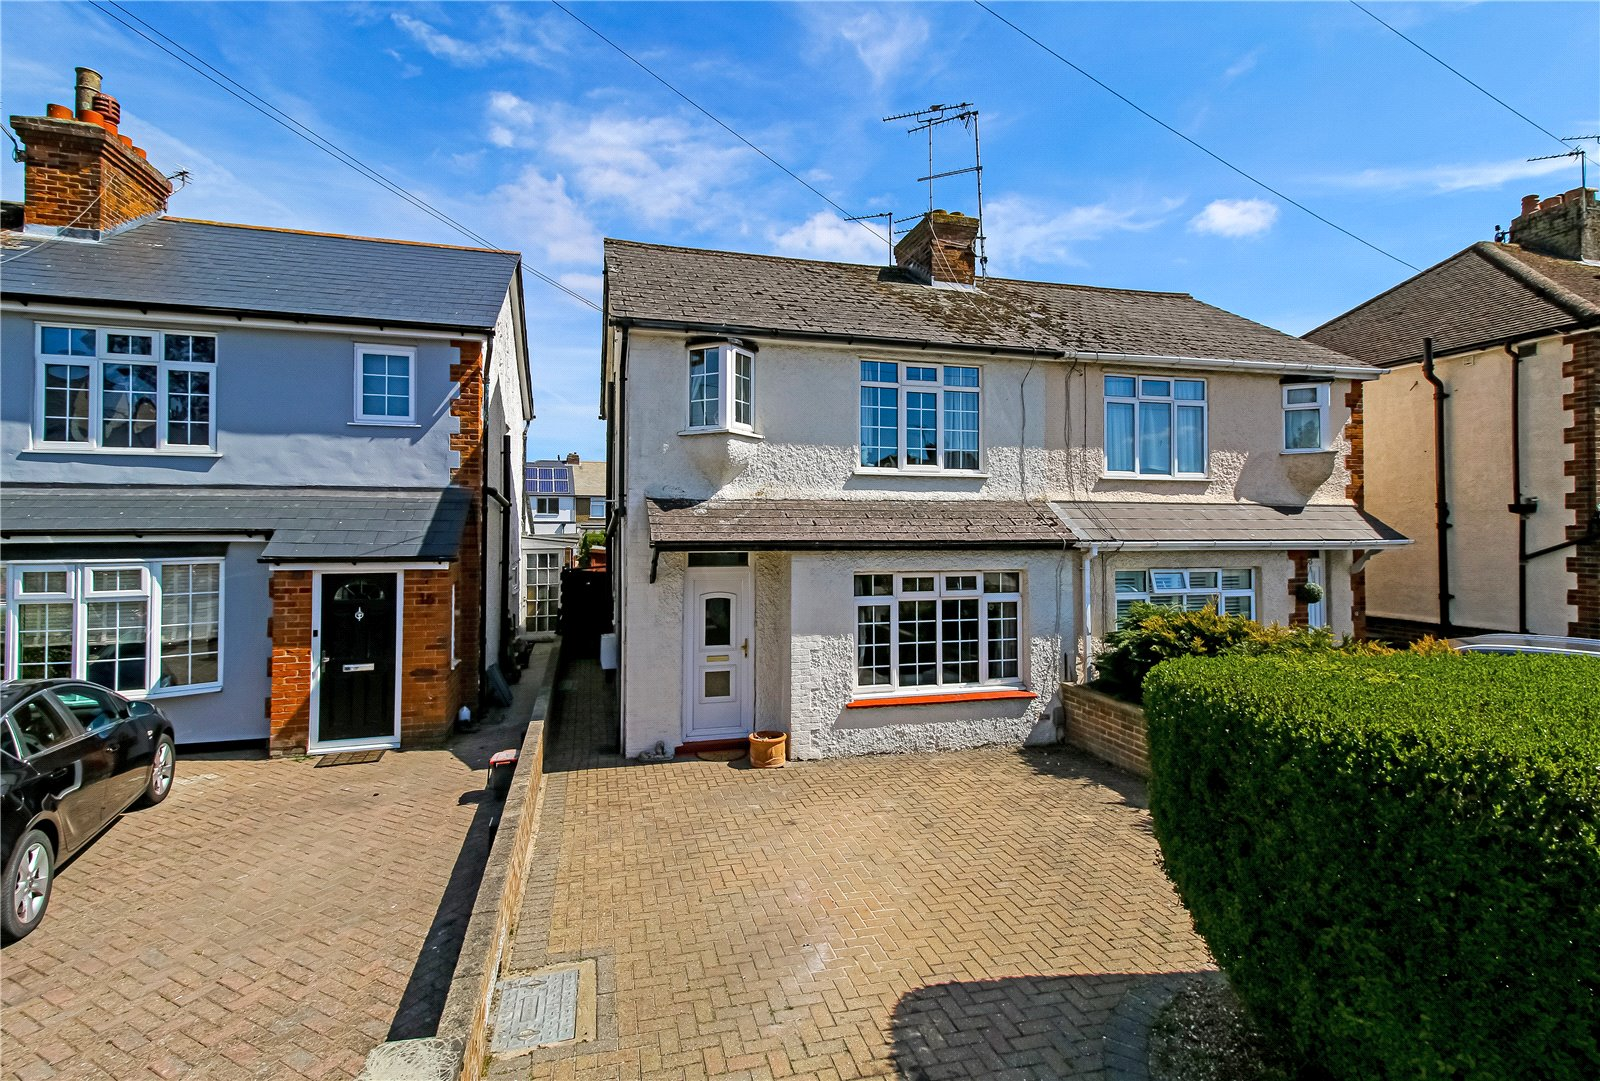 3 bed house for sale in Fountain Lane, Maidstone, ME16